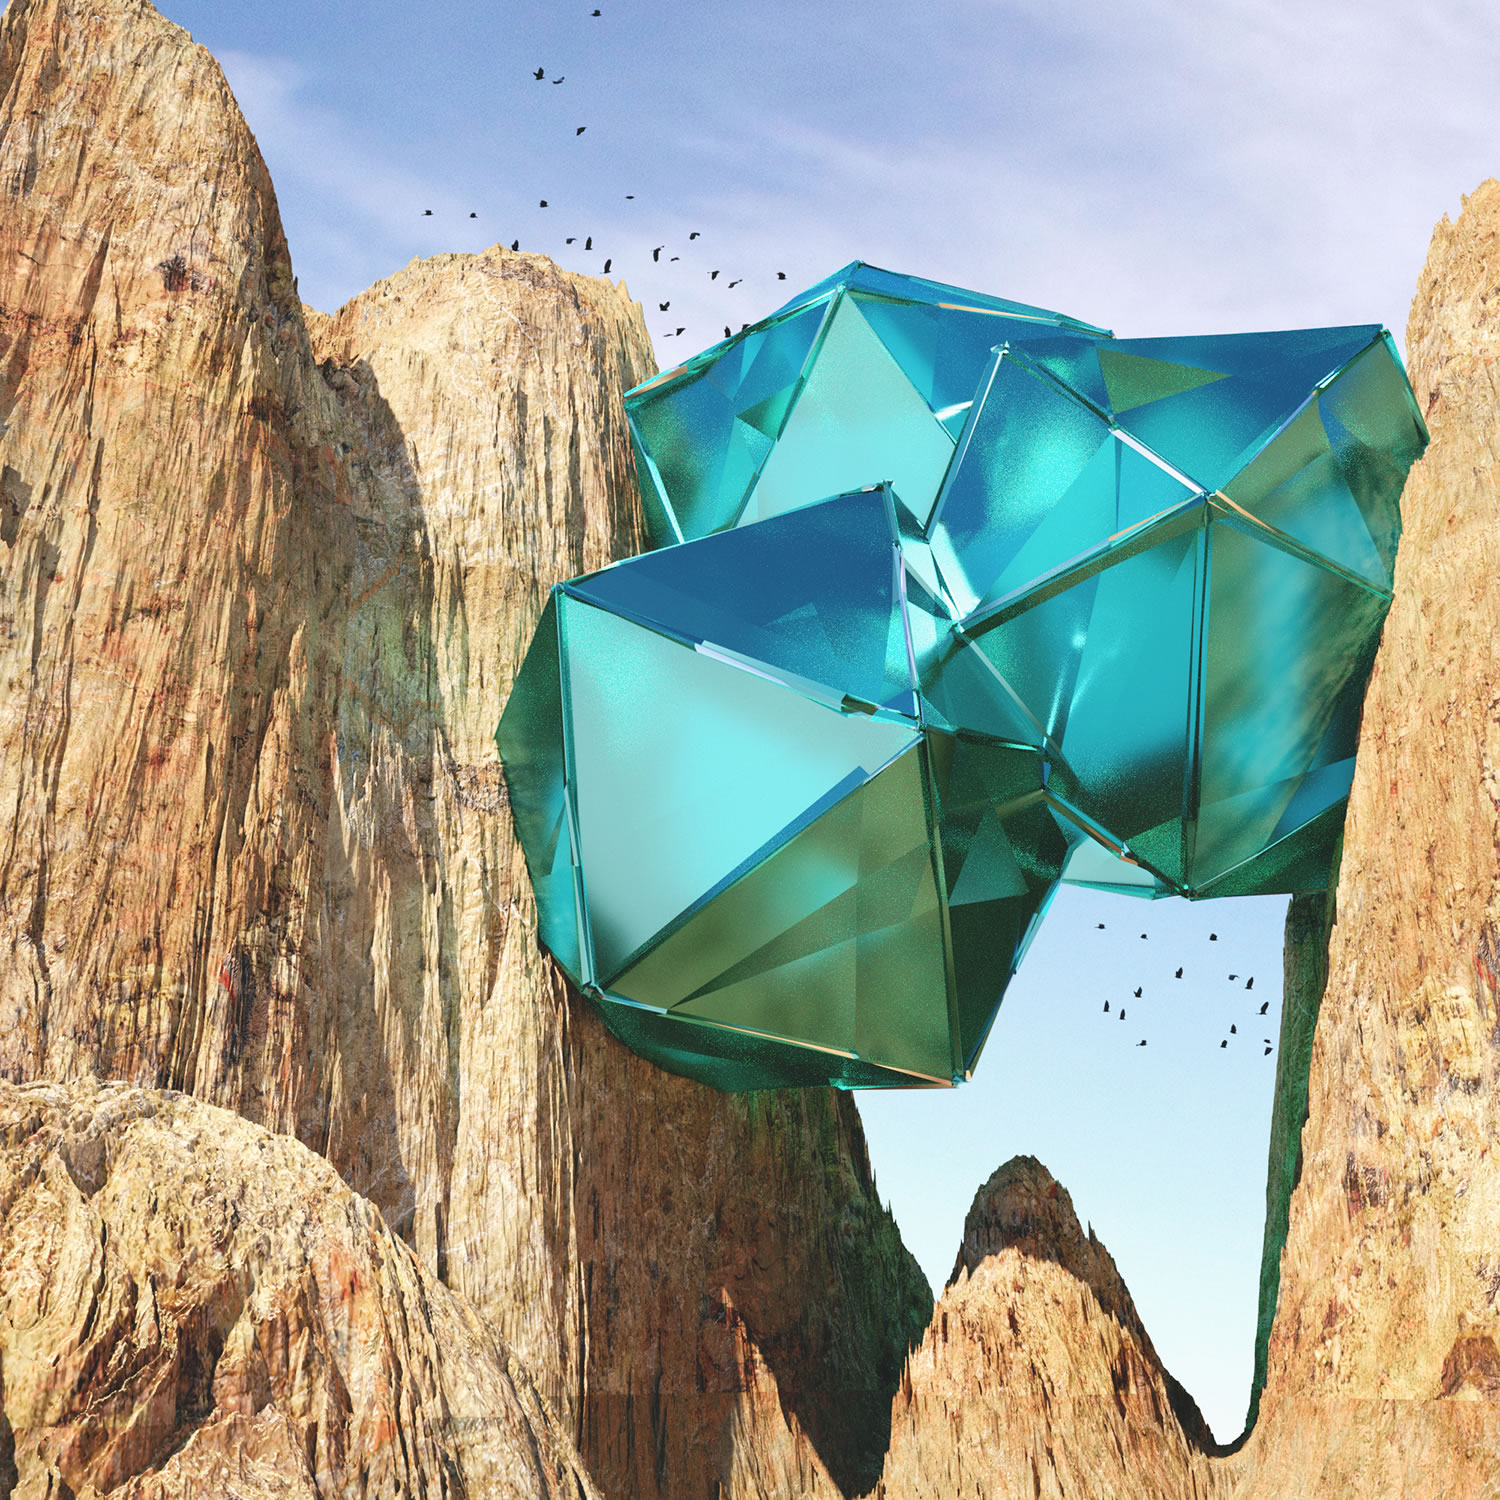 turquoise geometric shapes stuck in rocks, thybony